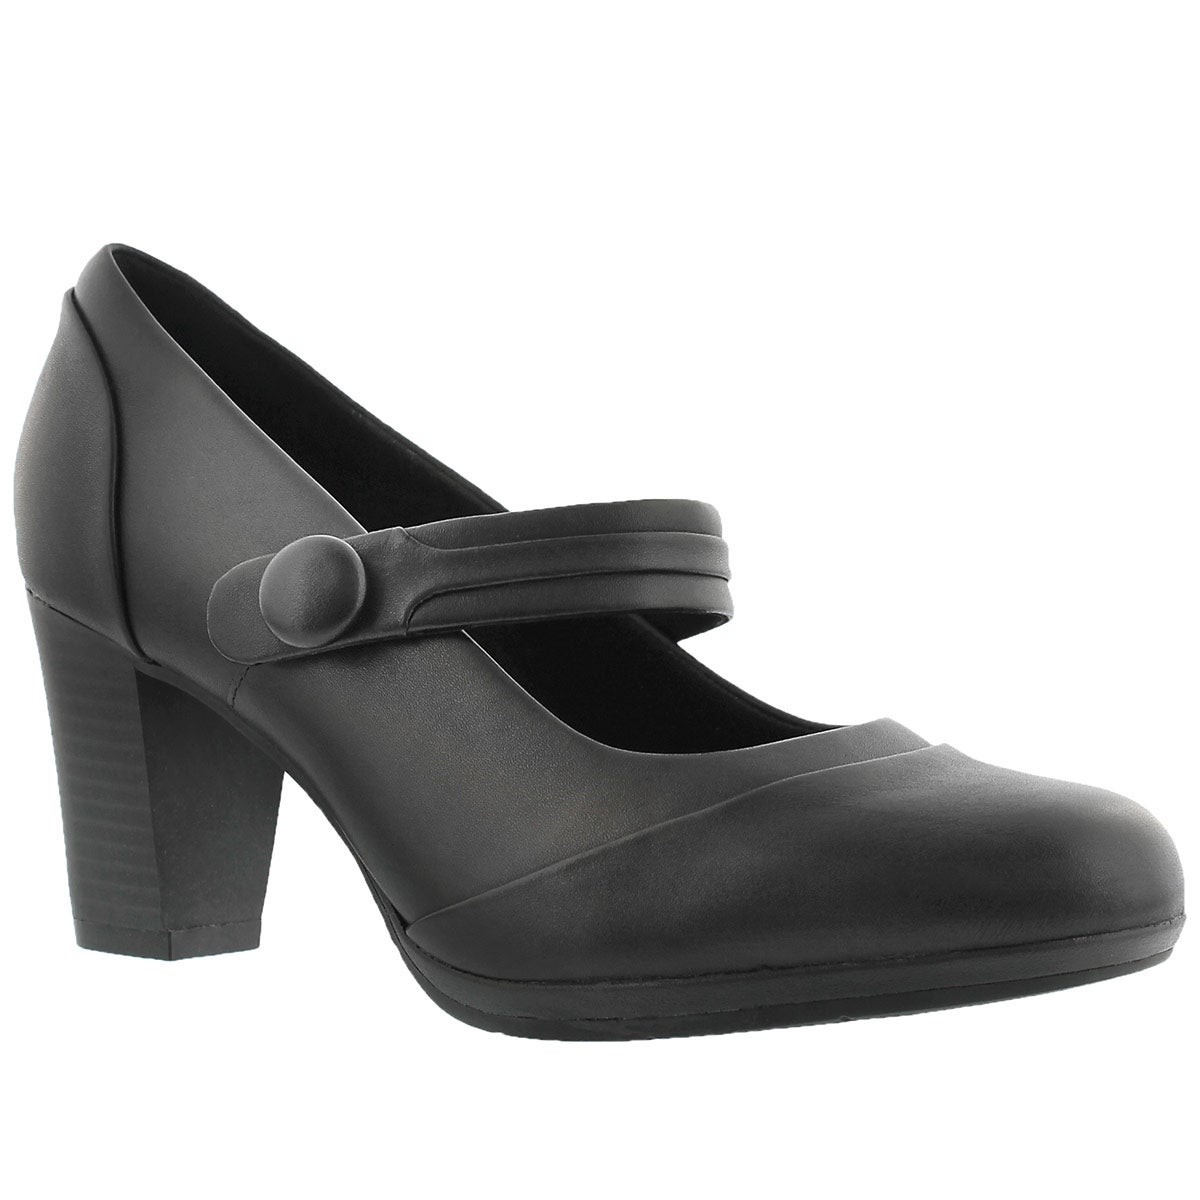 Women's BRYNN MARE black leather Mary Jane heels